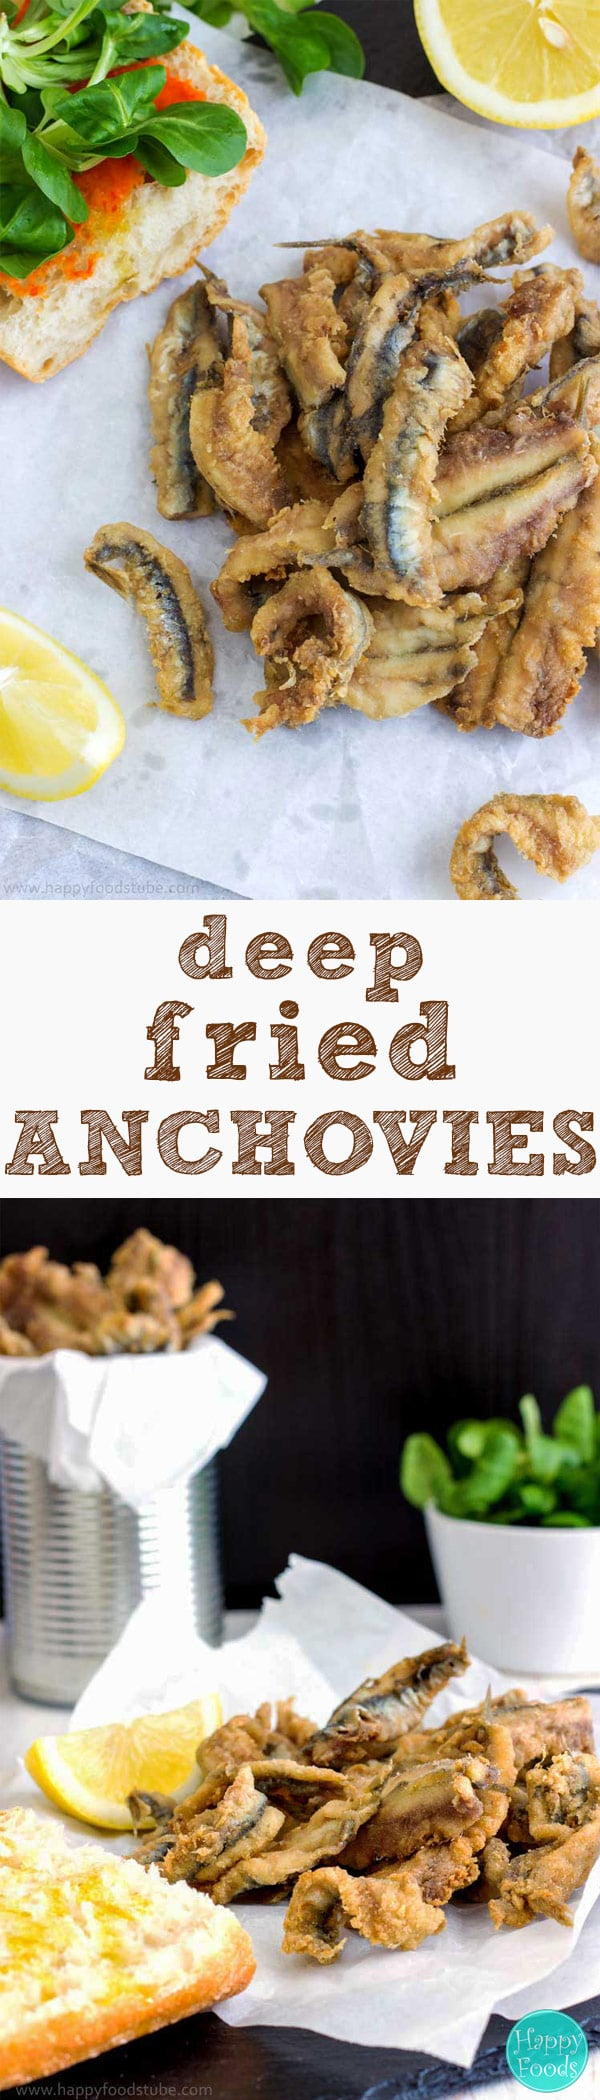 Deep Fried Anchovies are typical and most popular Spanish tapas. Fried Anchovies are excellent starter and drizzled with lemon juice they are hard to resist